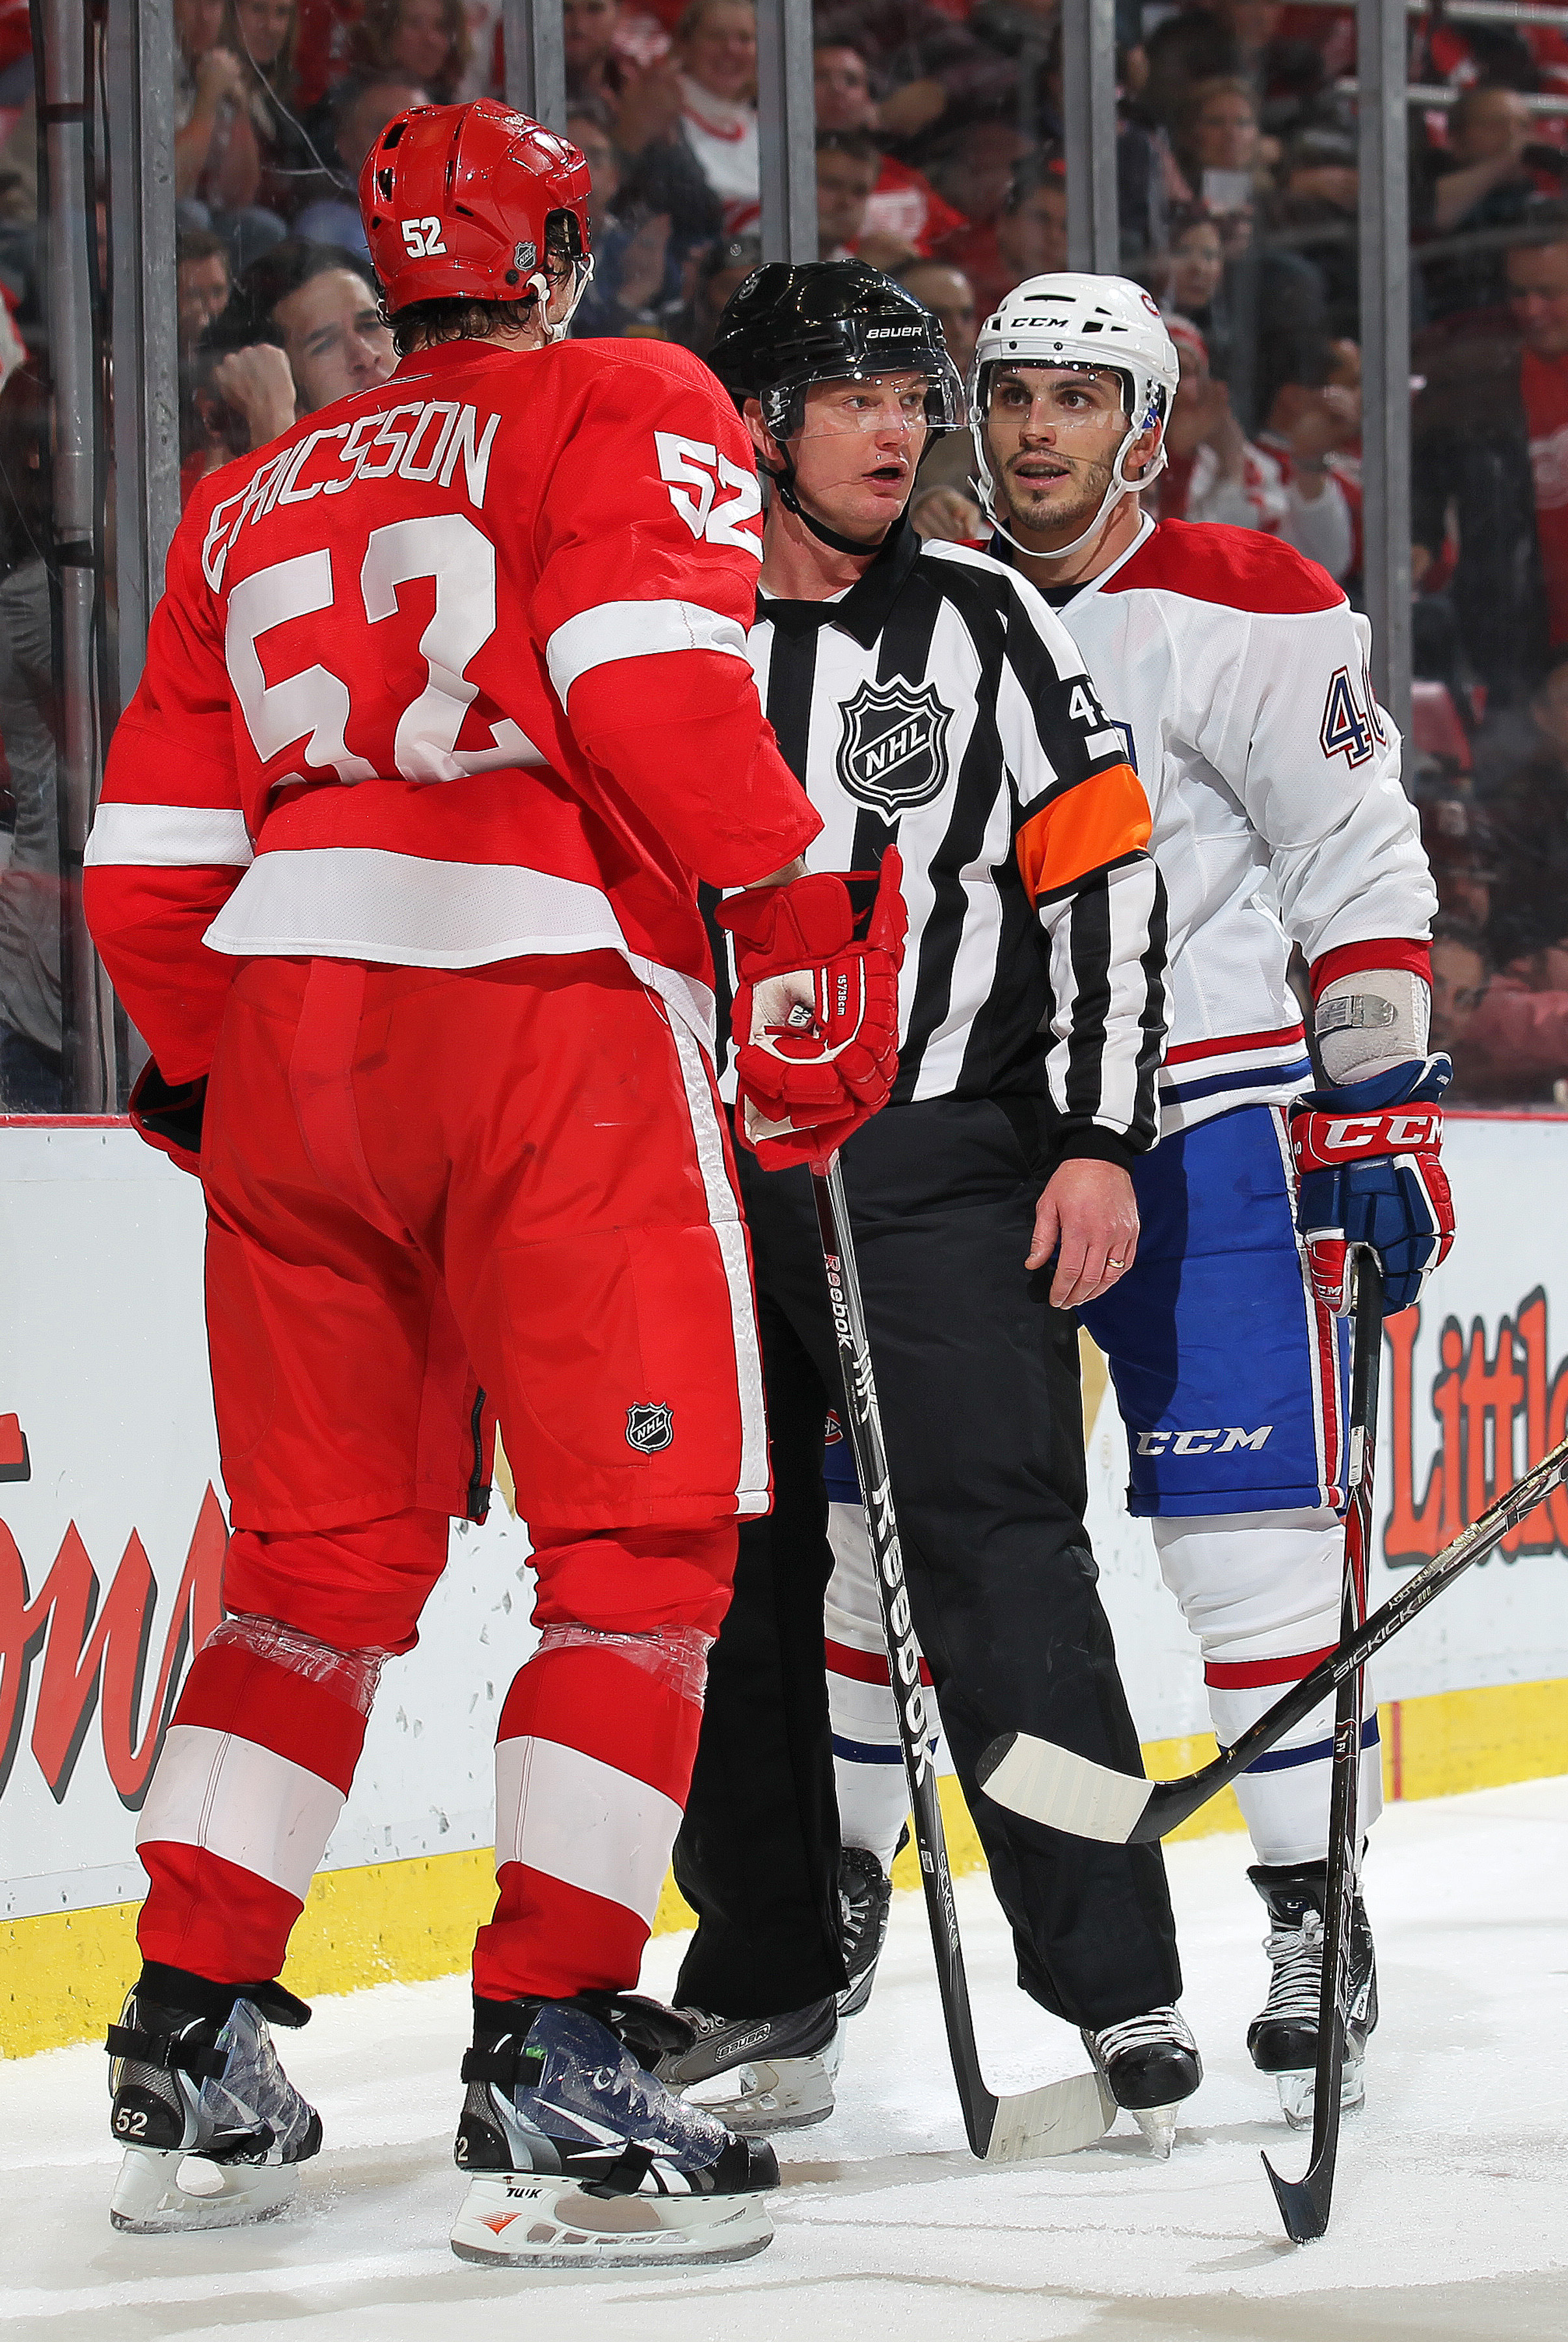 DETROIT,MI - DECEMBER 10:  Maxim Lapierre #40 of the Montreal Canadiens and Jonathan Ericsson #52 of the Detroit Red Wings are separated by a referee during the game at the Joe Louis Arena on December 10, 2010  in Detroit, Michigan. The Wings defeated the